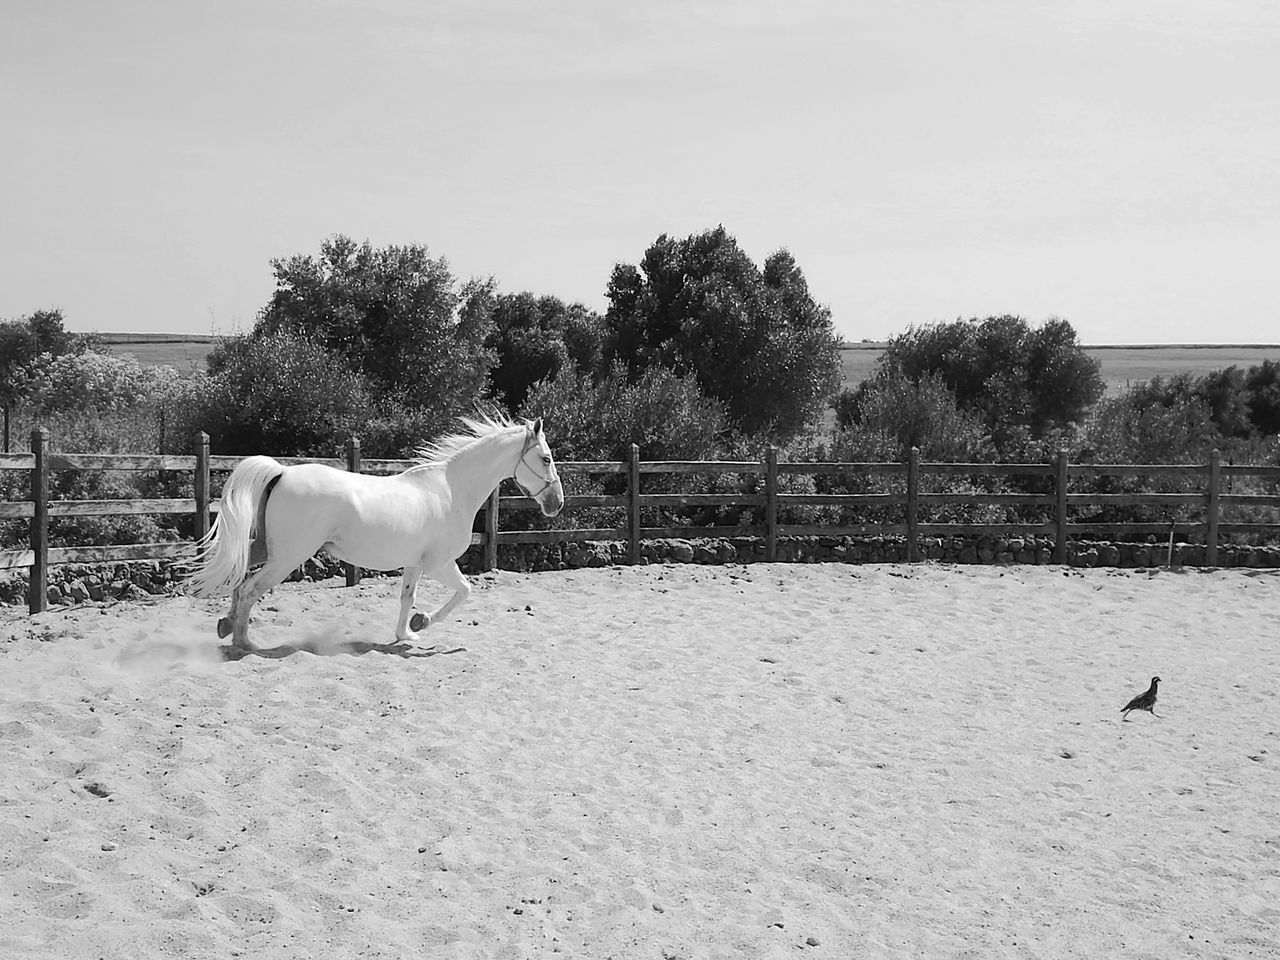 Horse Domestic Animals One Animal Pets Animal Animal Themes Mammal Sky Outdoors Day Tree Nature No People